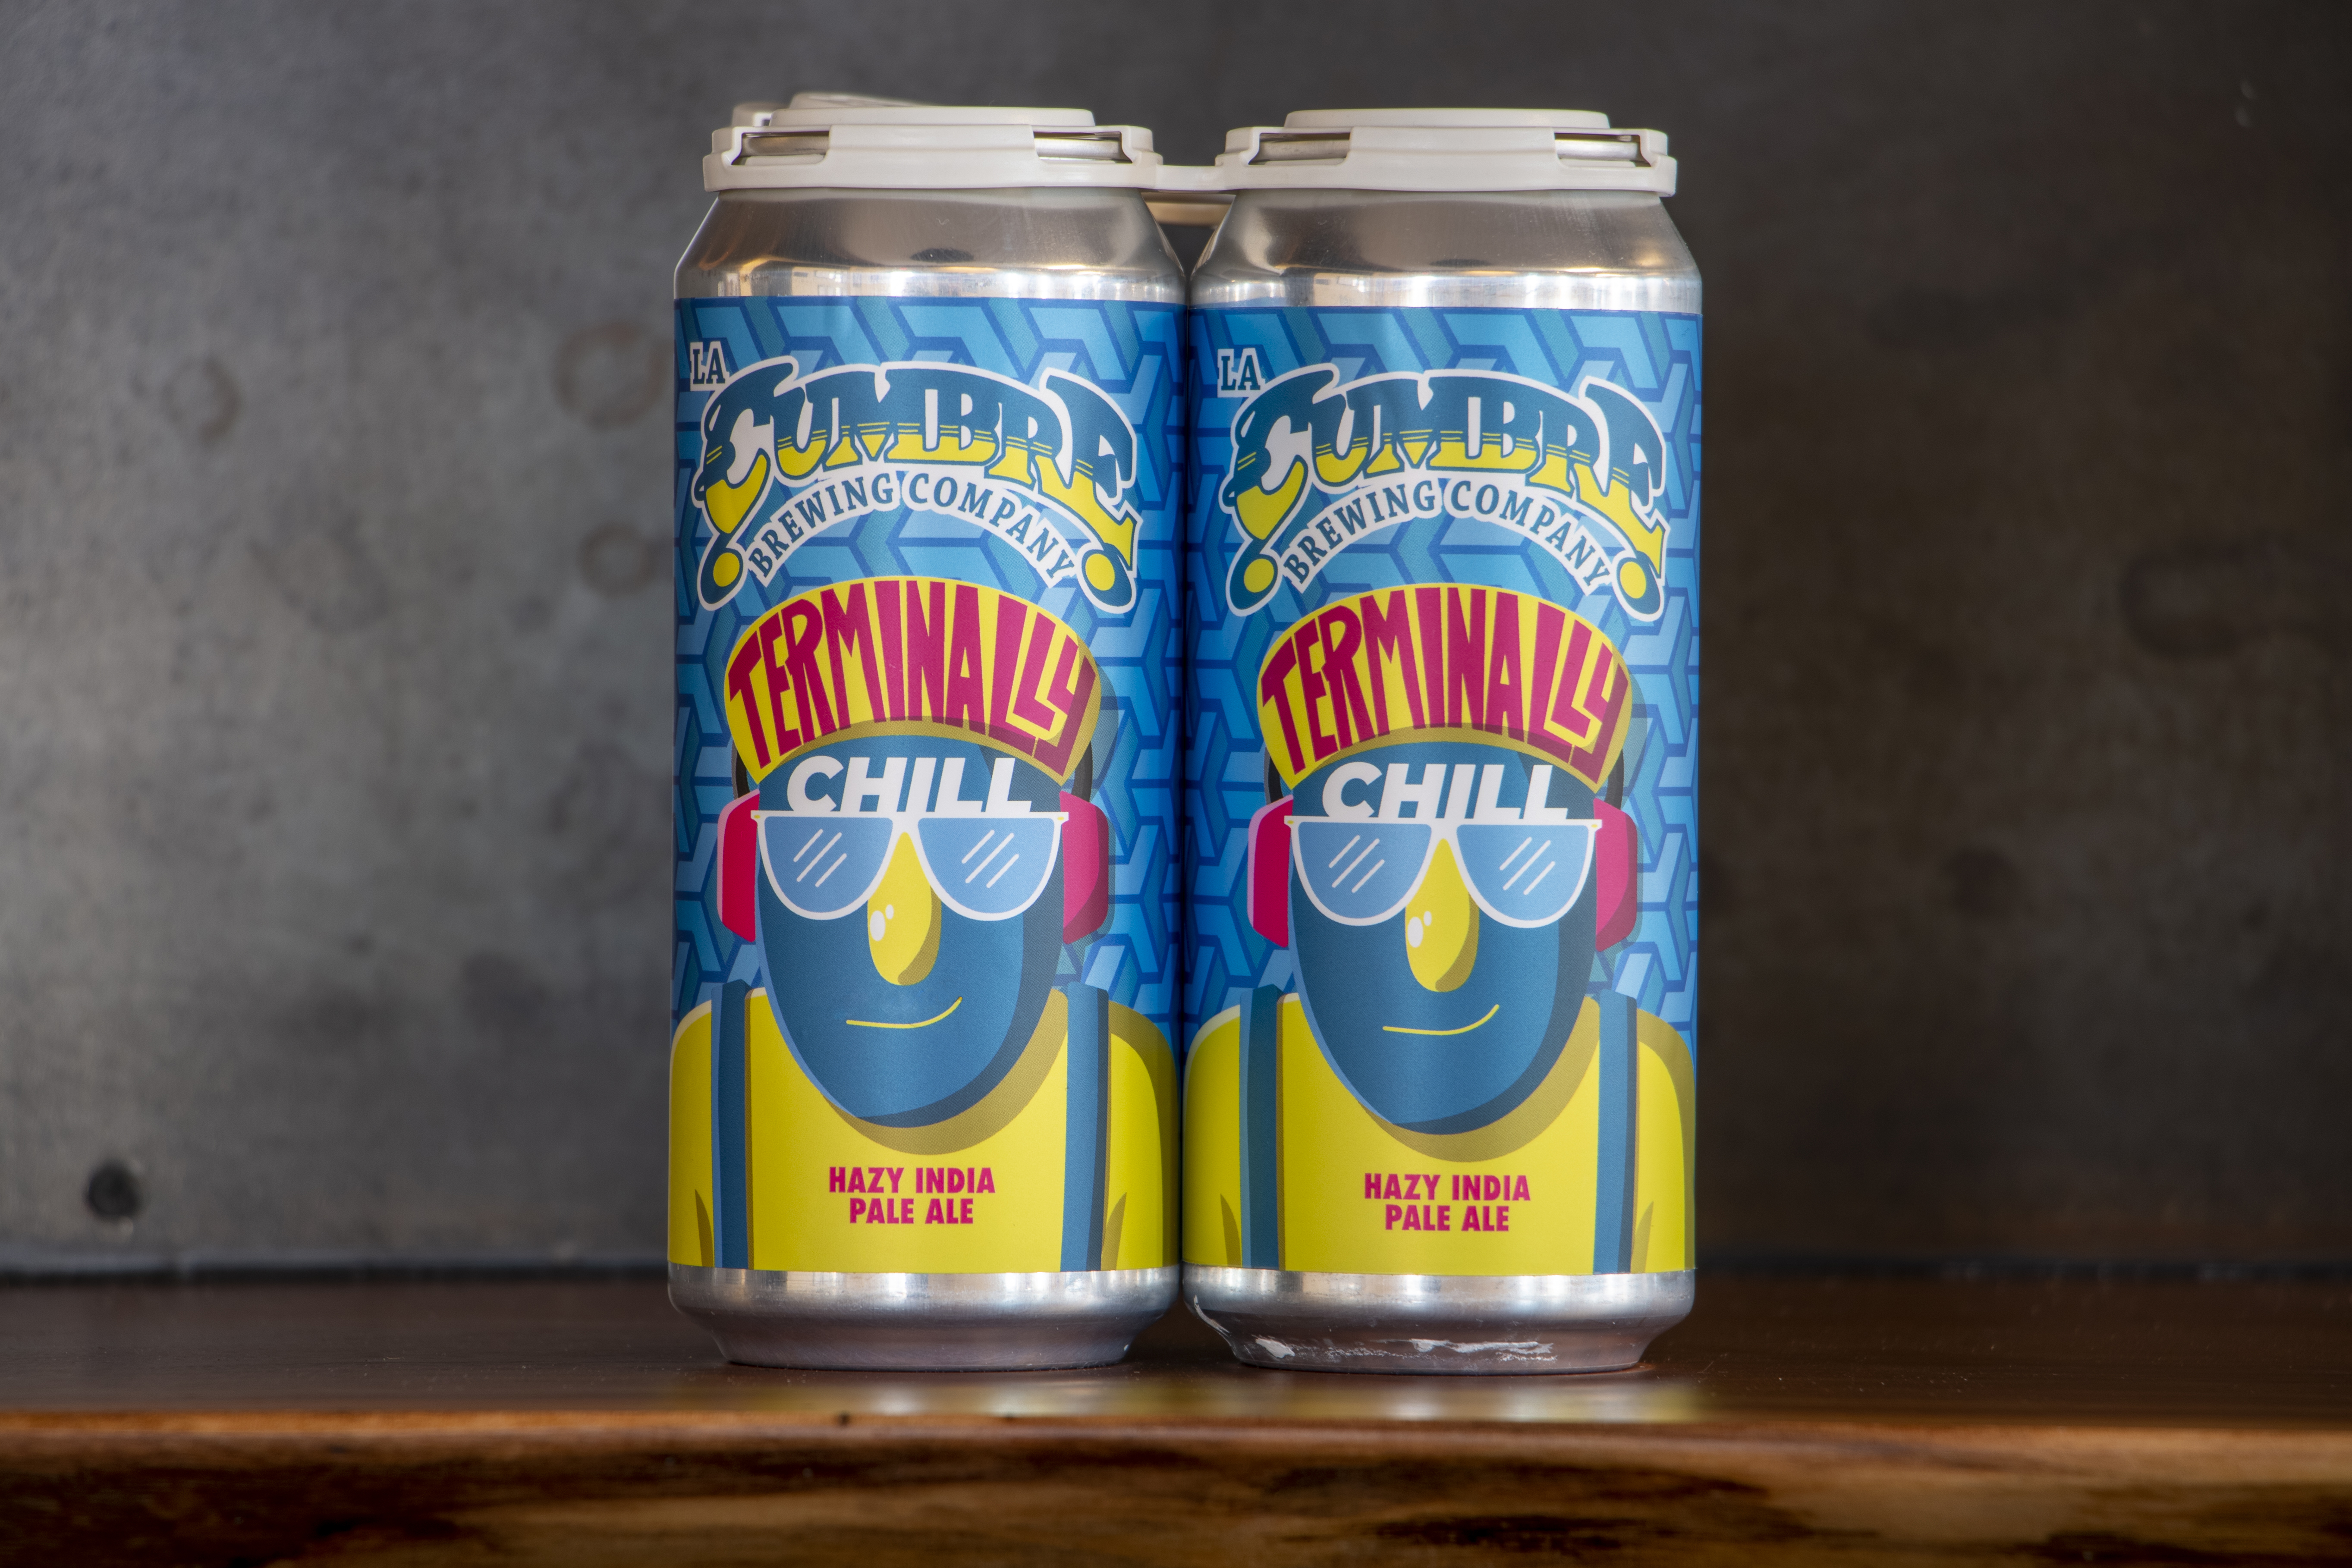 Terminally Chill 4 pack